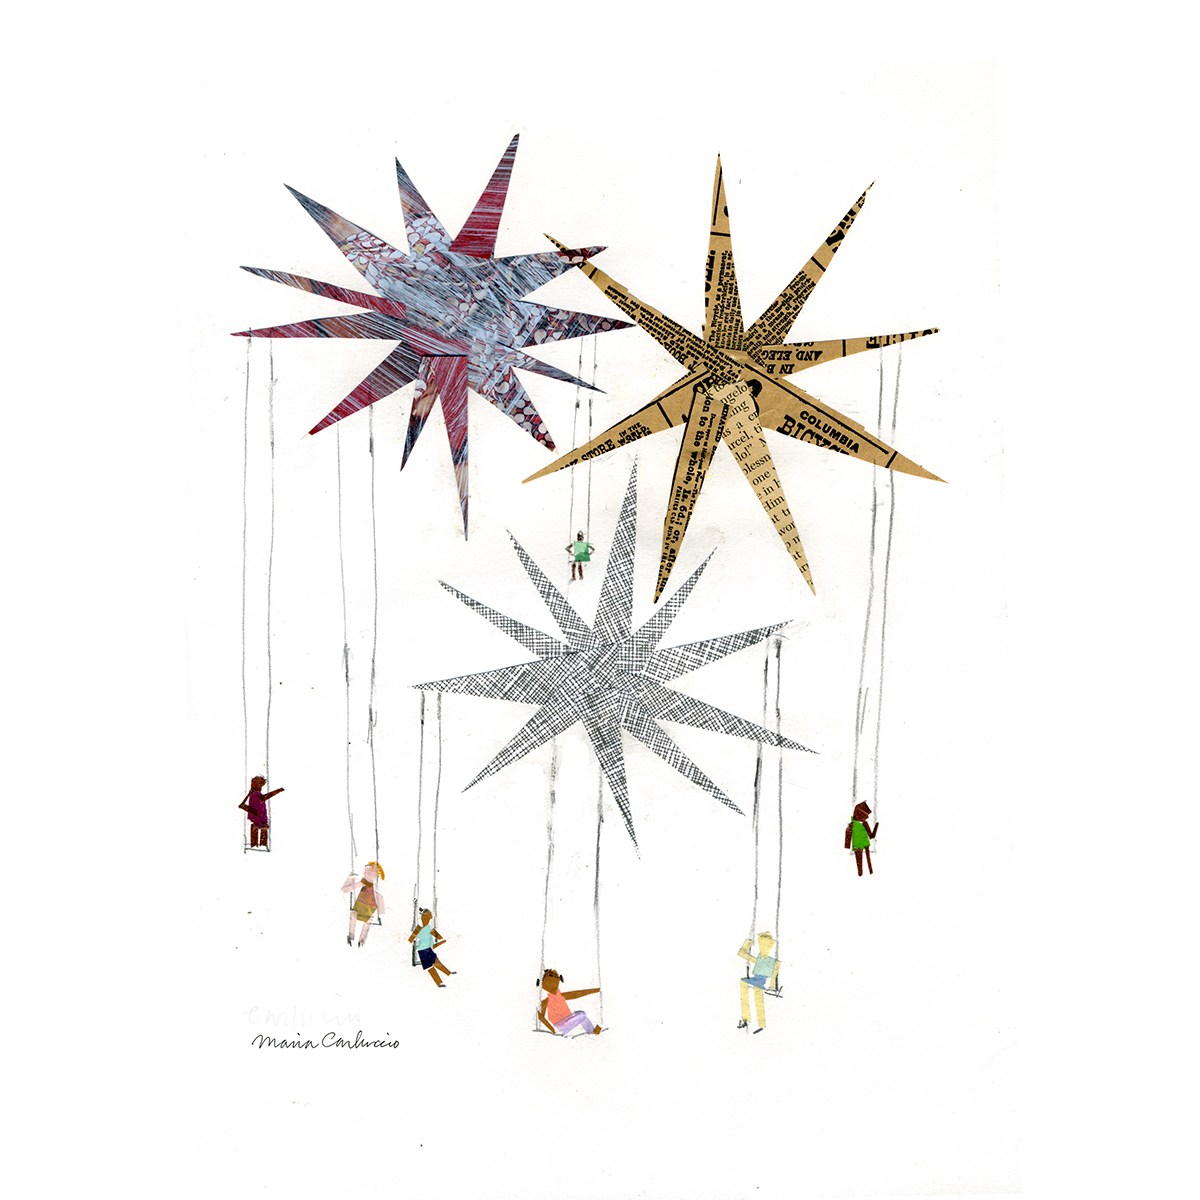 Swinging on a Star_100_shop.jpg